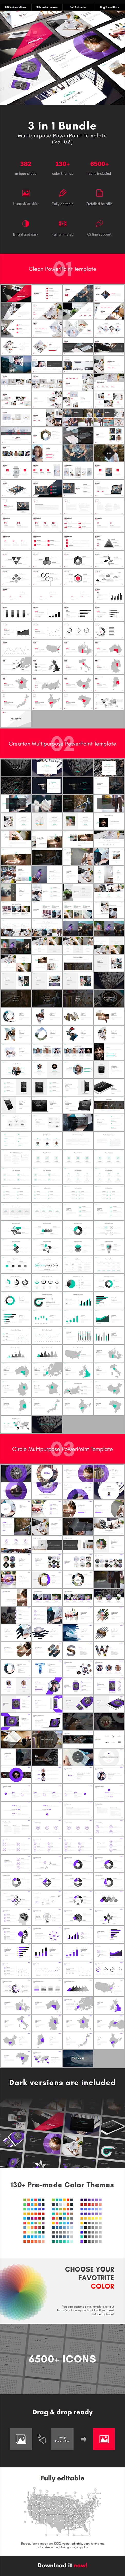 3 in 1 Multipurpose PowerPoint Template Bundle (Vol.02) - Business PowerPoint Templates